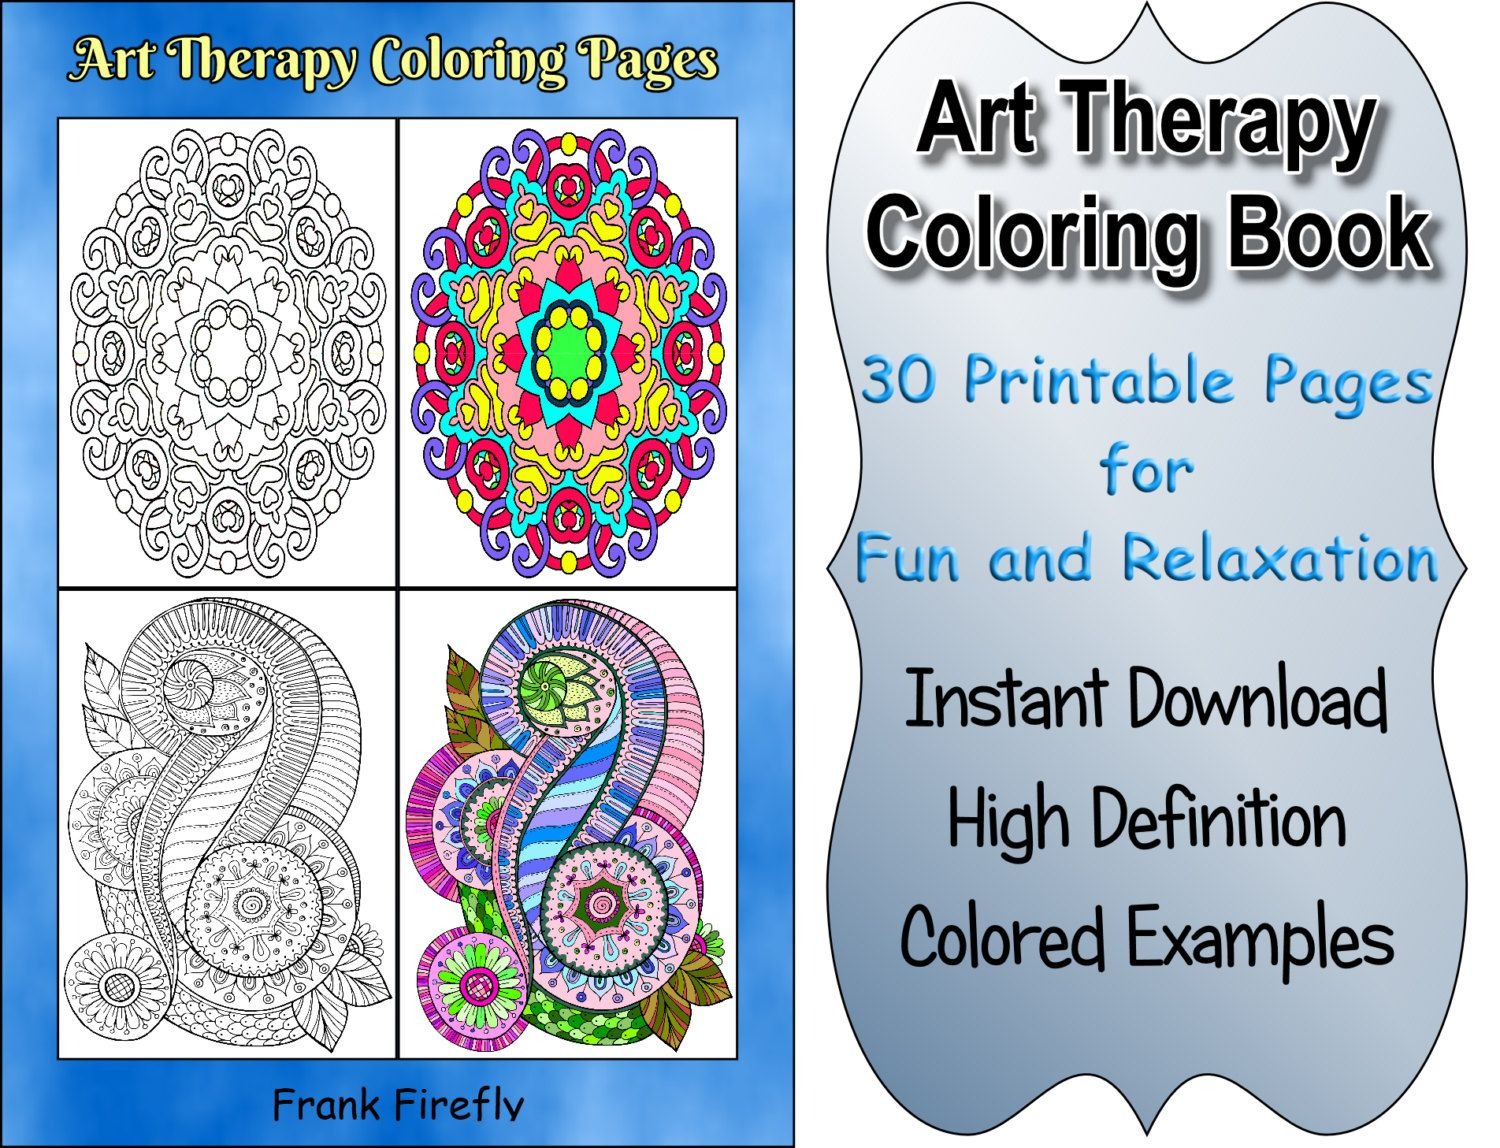 Art therapy coloring book and pencils - Art Therapy Coloring Book 30 Printable Coloring Pages Outlines Color Examples Instant Download Art Therapy Coloring Pages